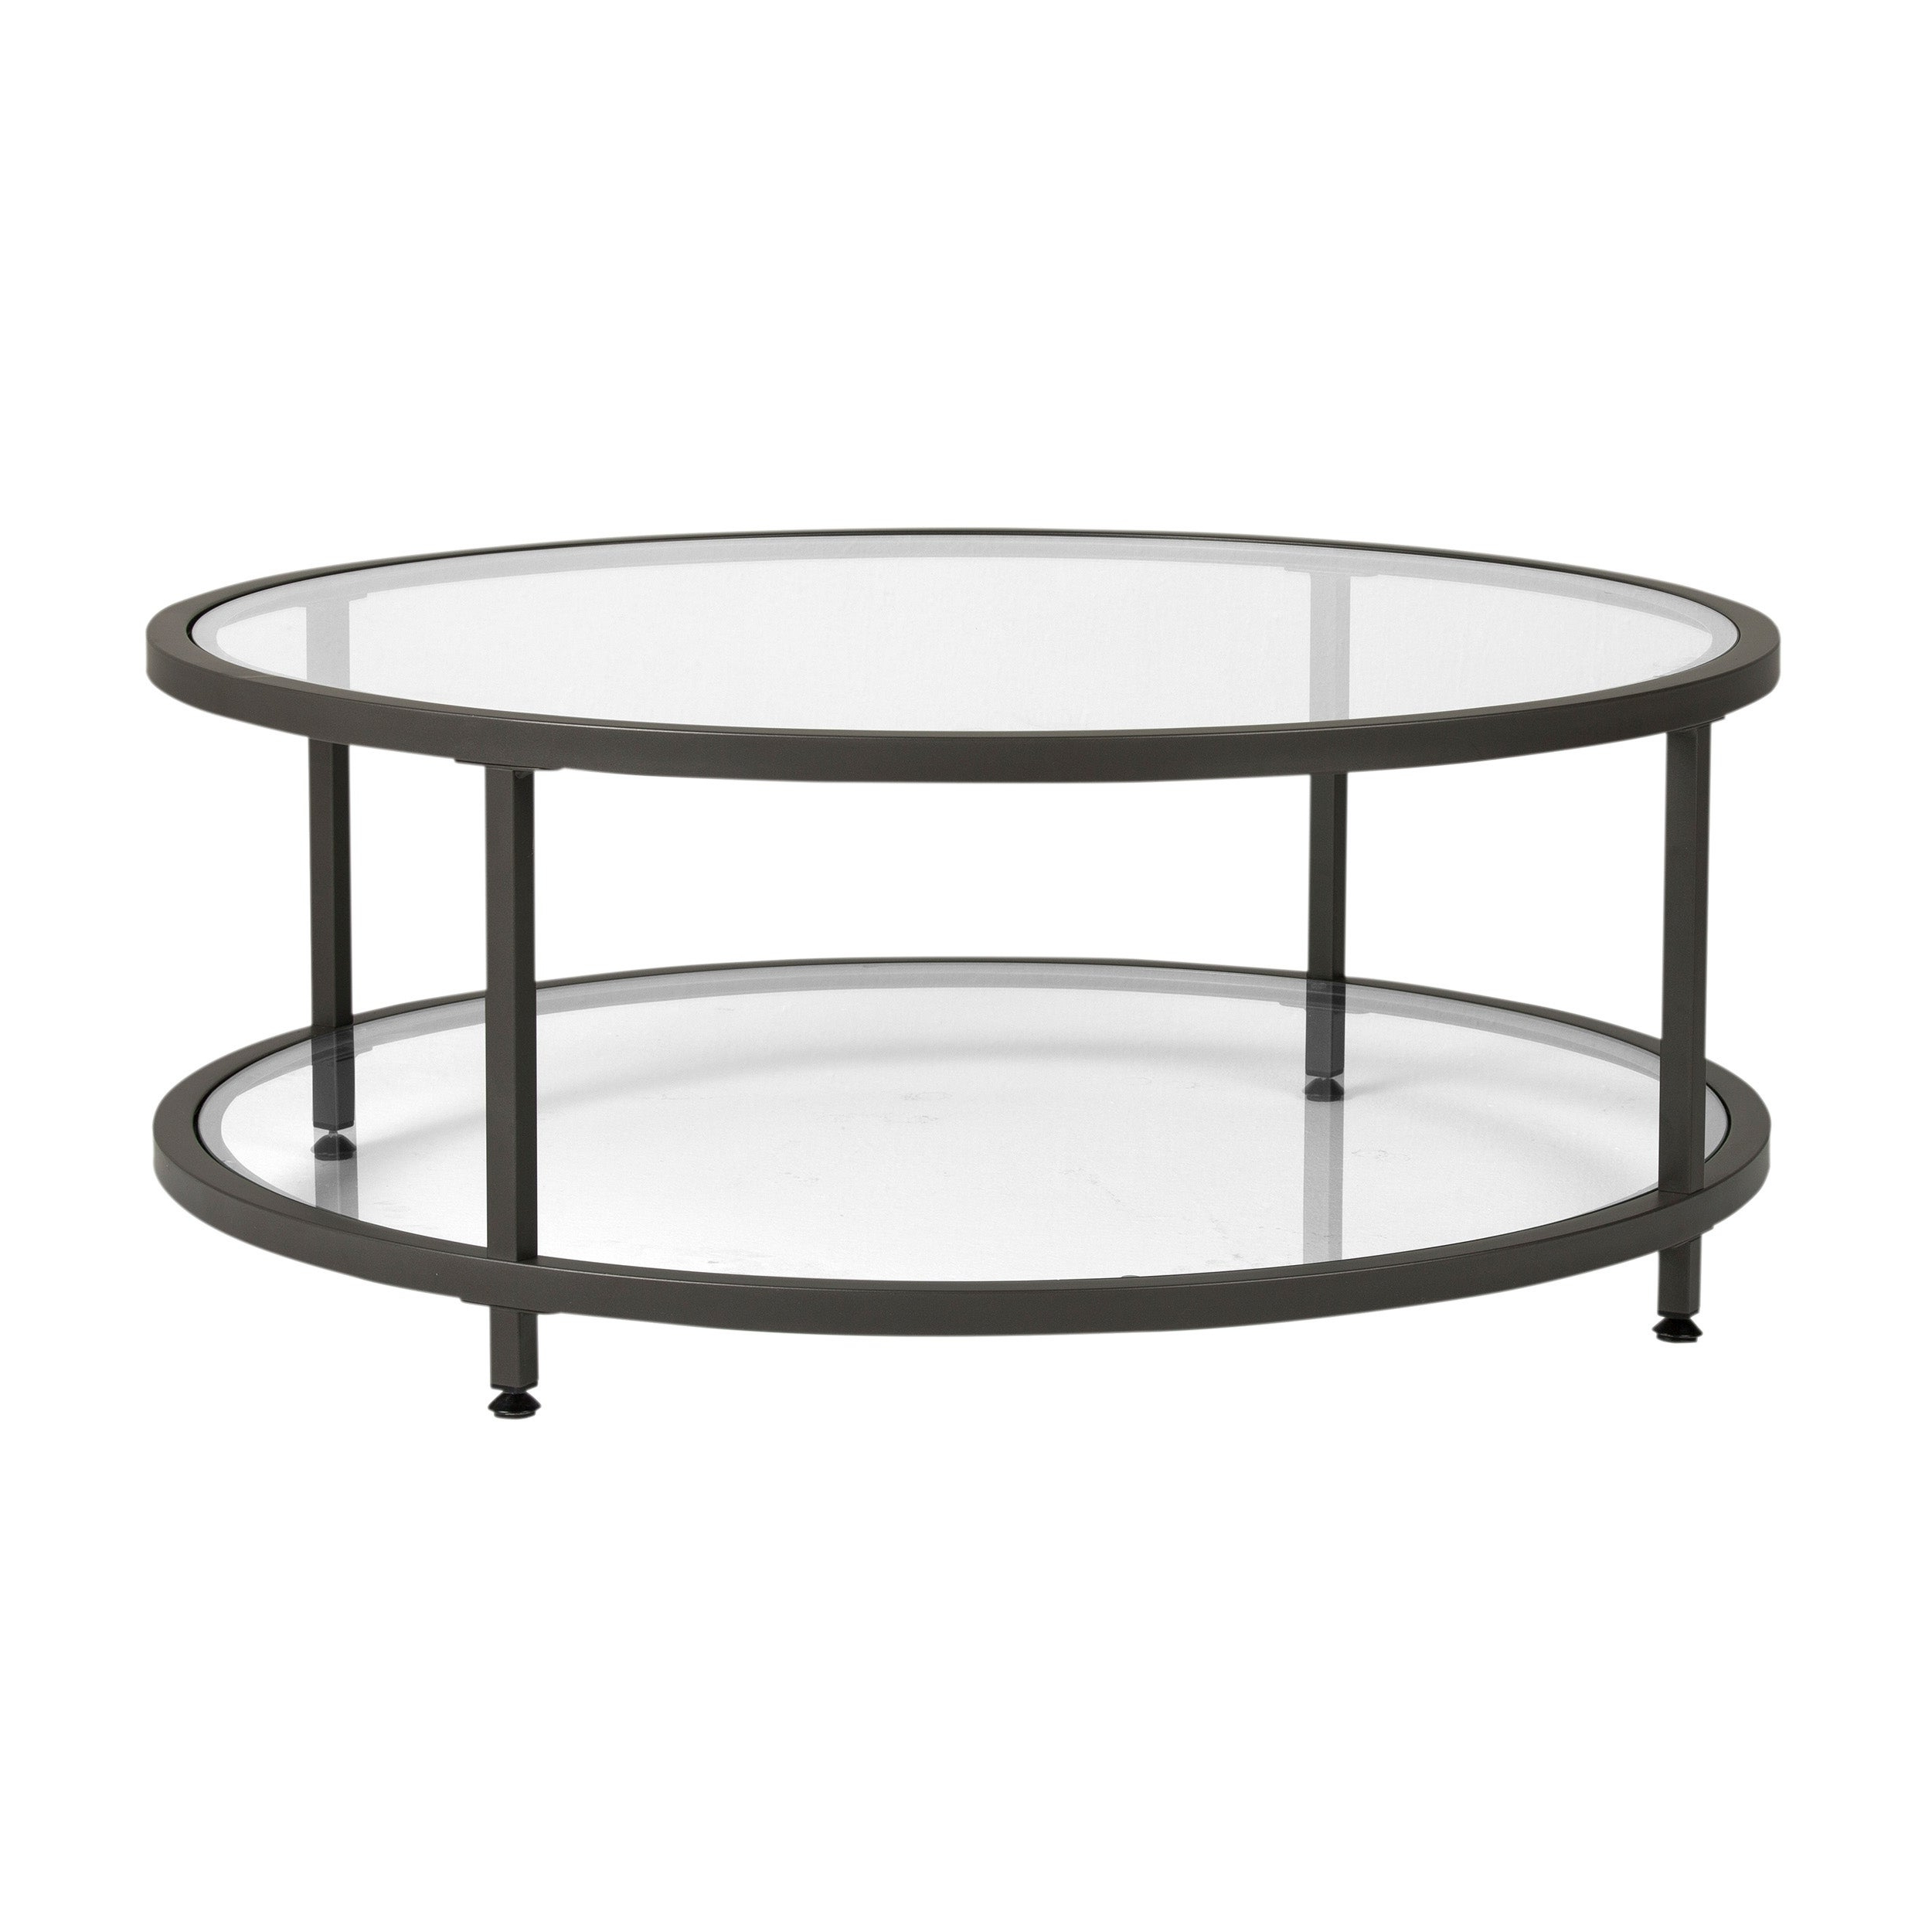 Carbon Loft Heimlich Pewter Steel/glass Round Coffee Table Pertaining To Well Liked Carbon Loft Heimlich Metal Glass Rectangle Coffee Tables (View 12 of 20)